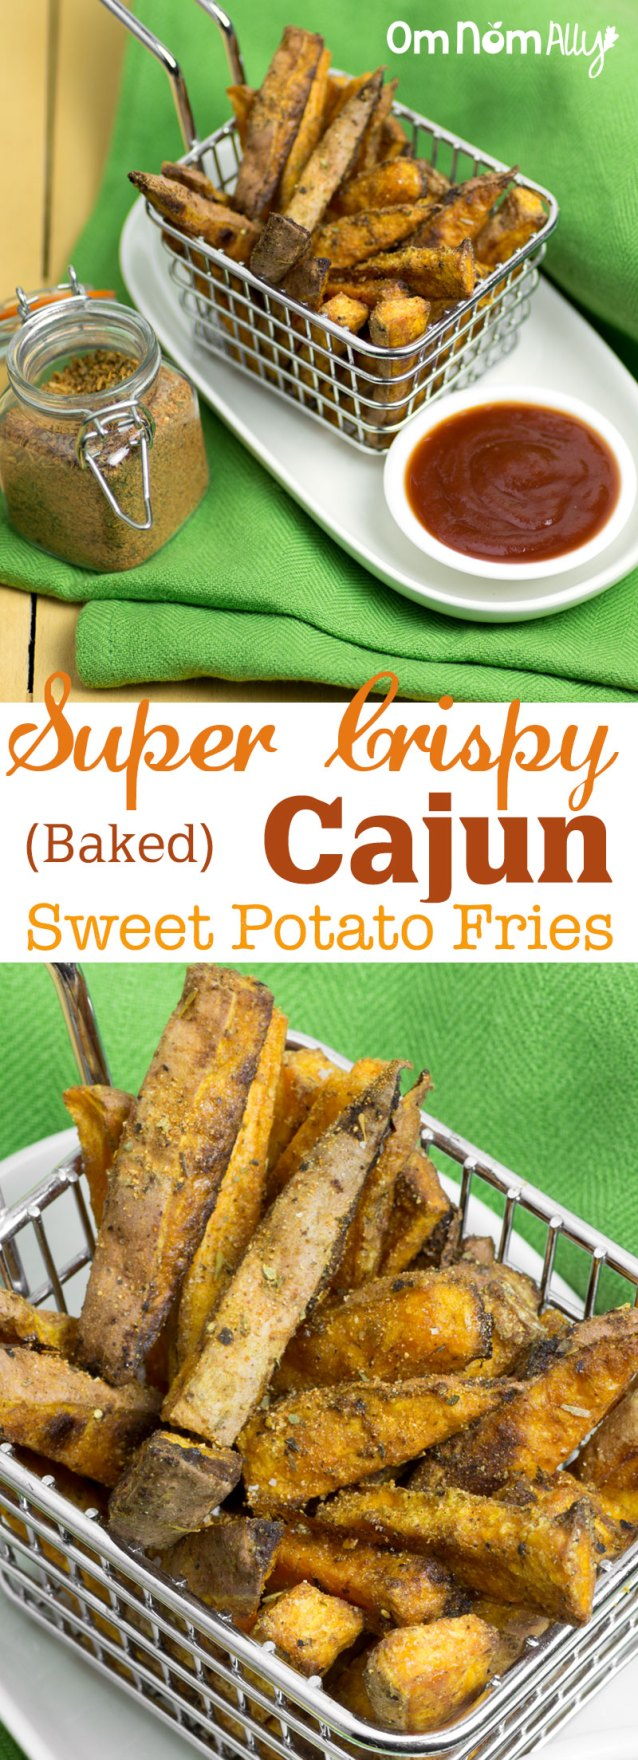 how to cook crispy sweet potato fries in oven